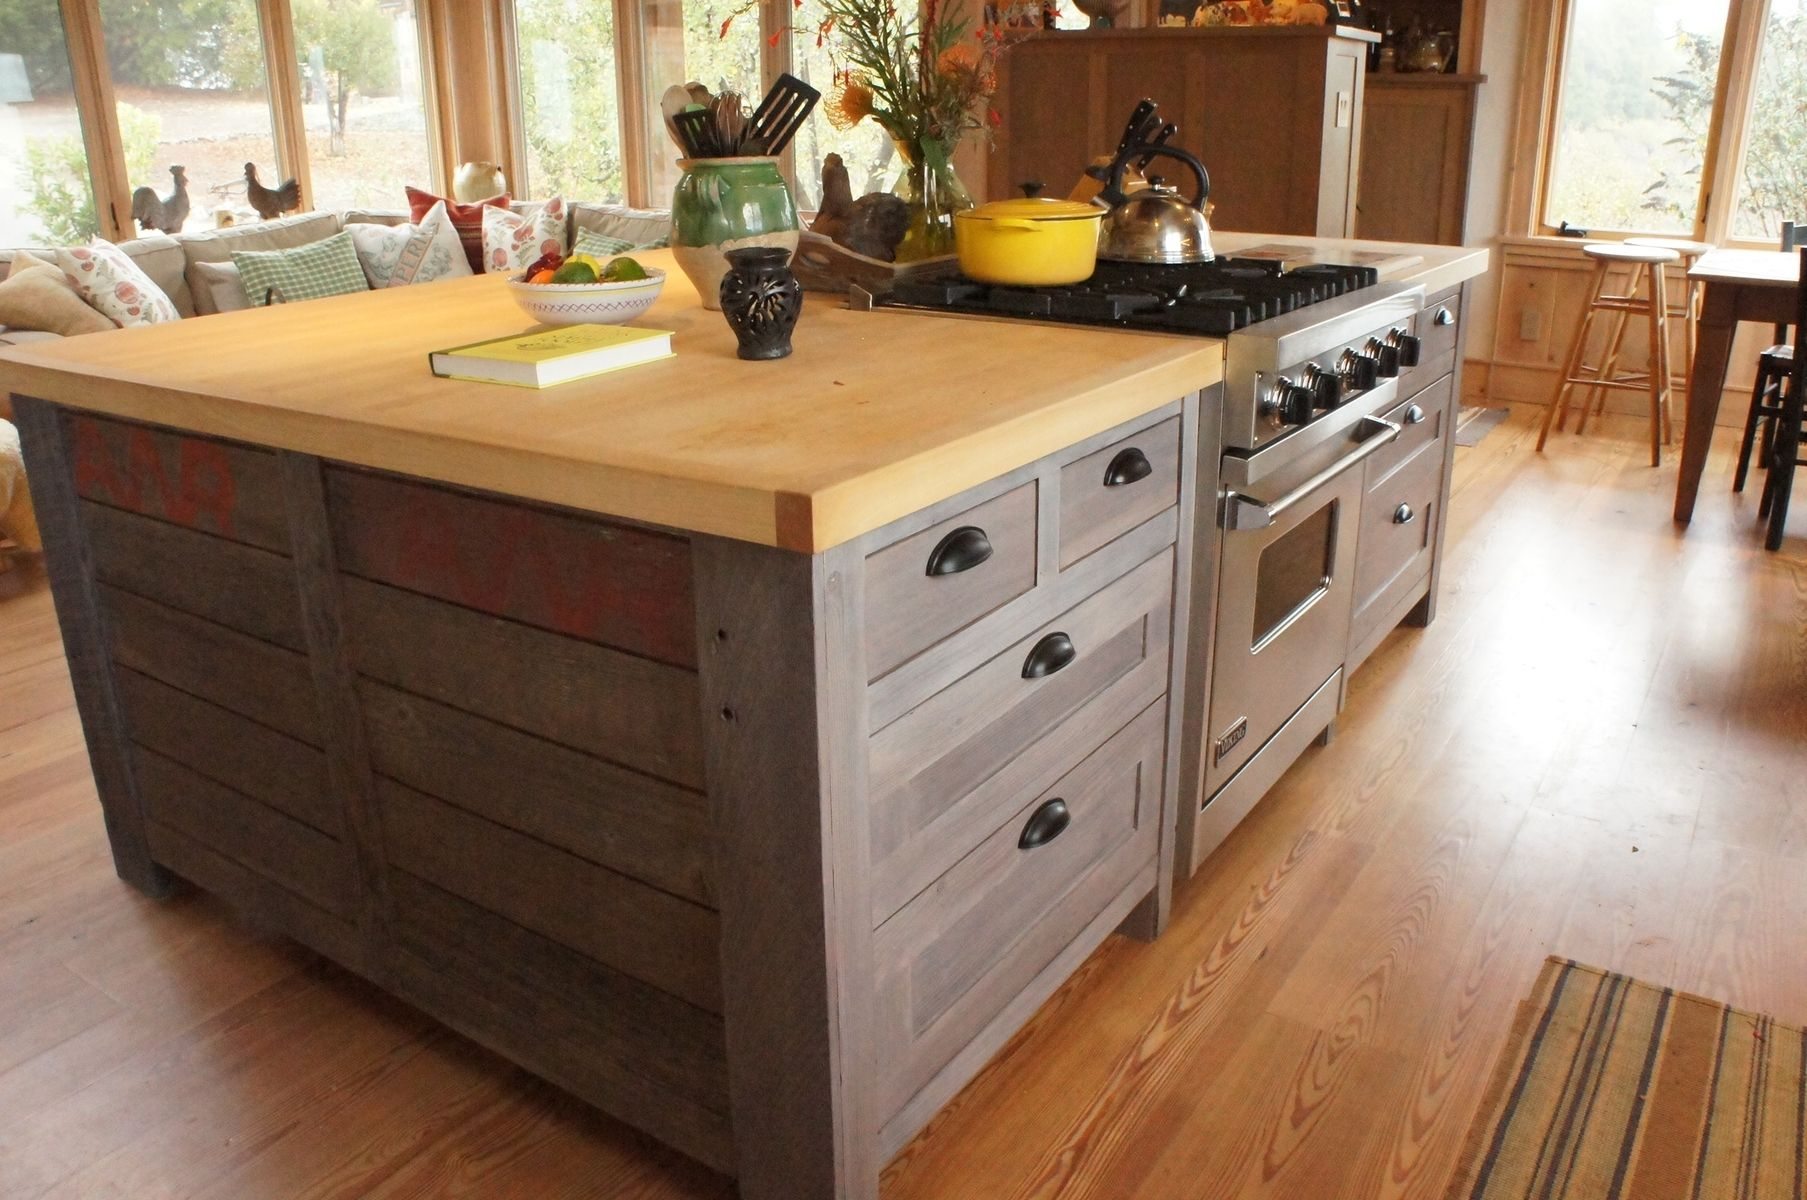 Uncategorized Kitchen Island Rustic hand crafted rustic kitchen island by atlas stringed instruments custom made island